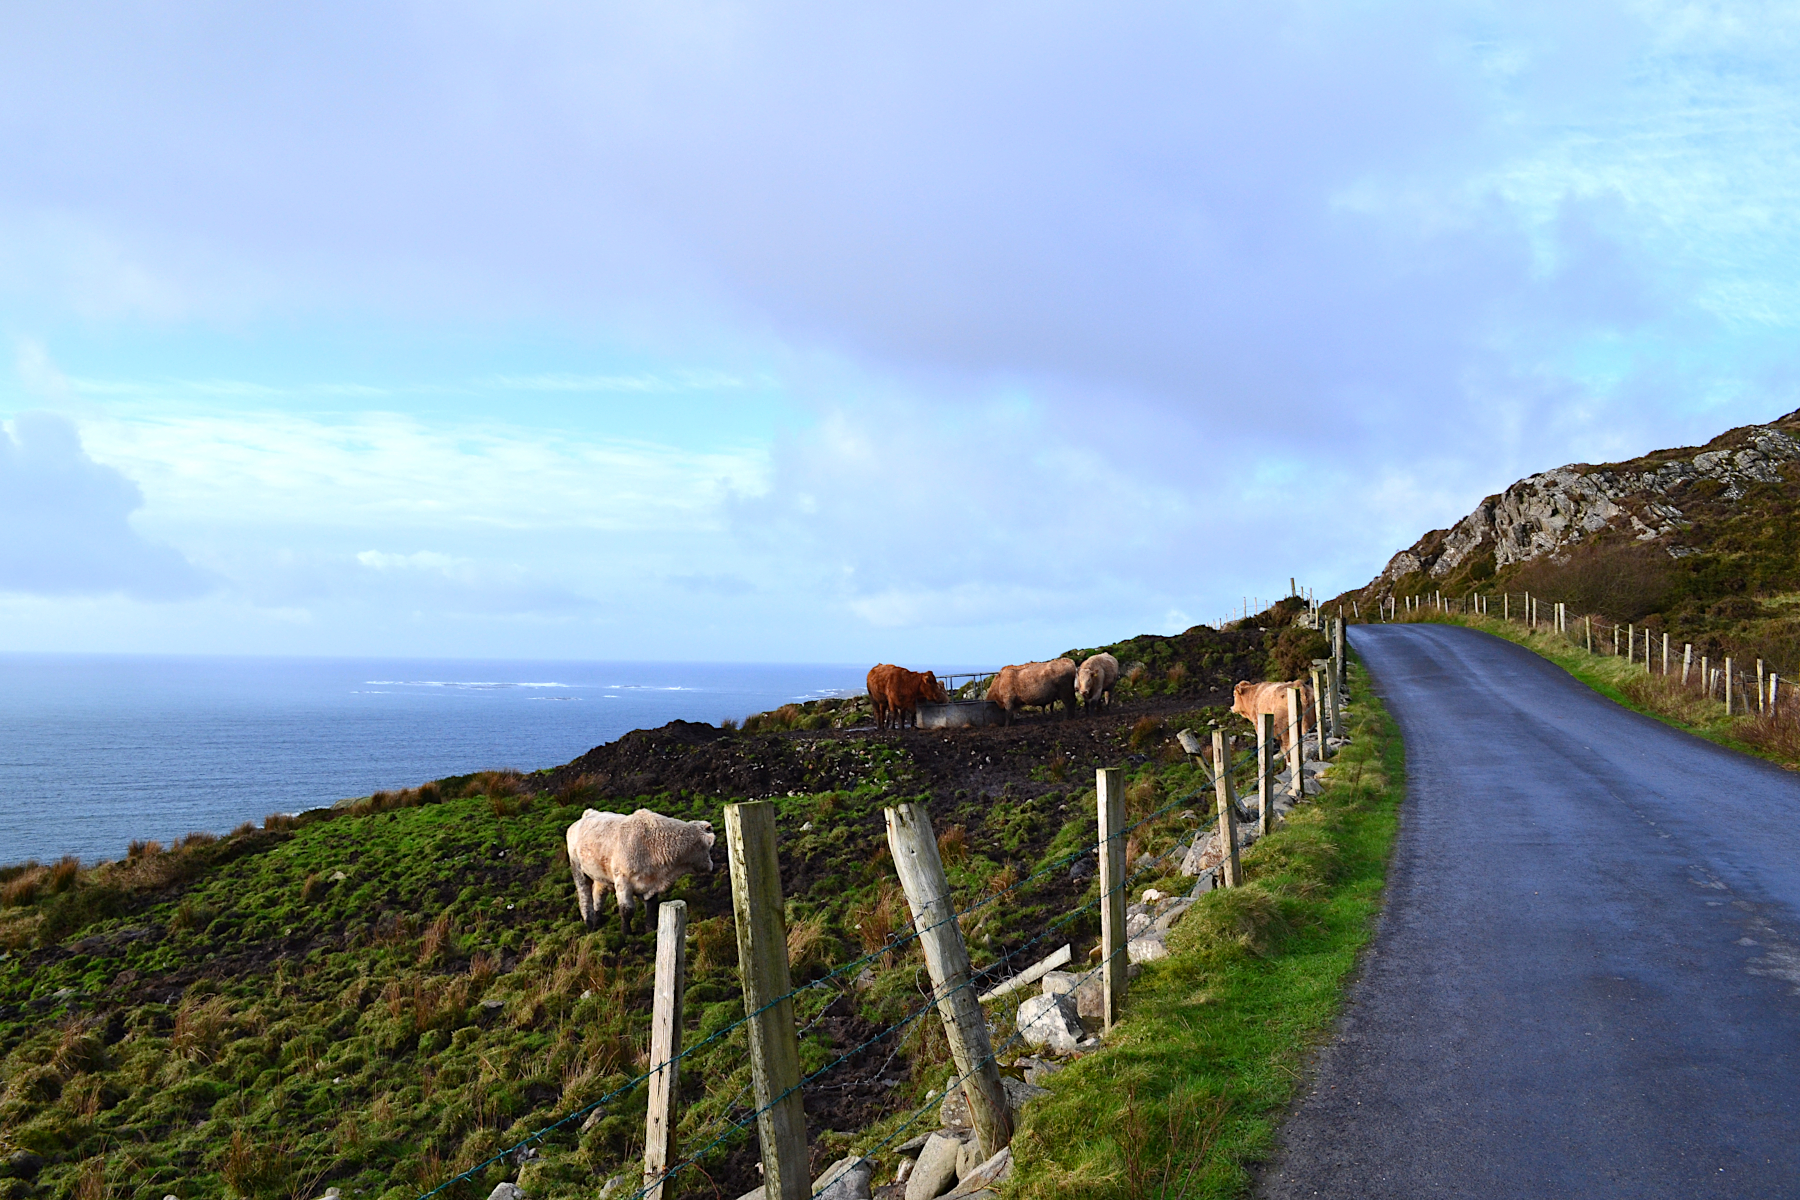 Vaches sky road